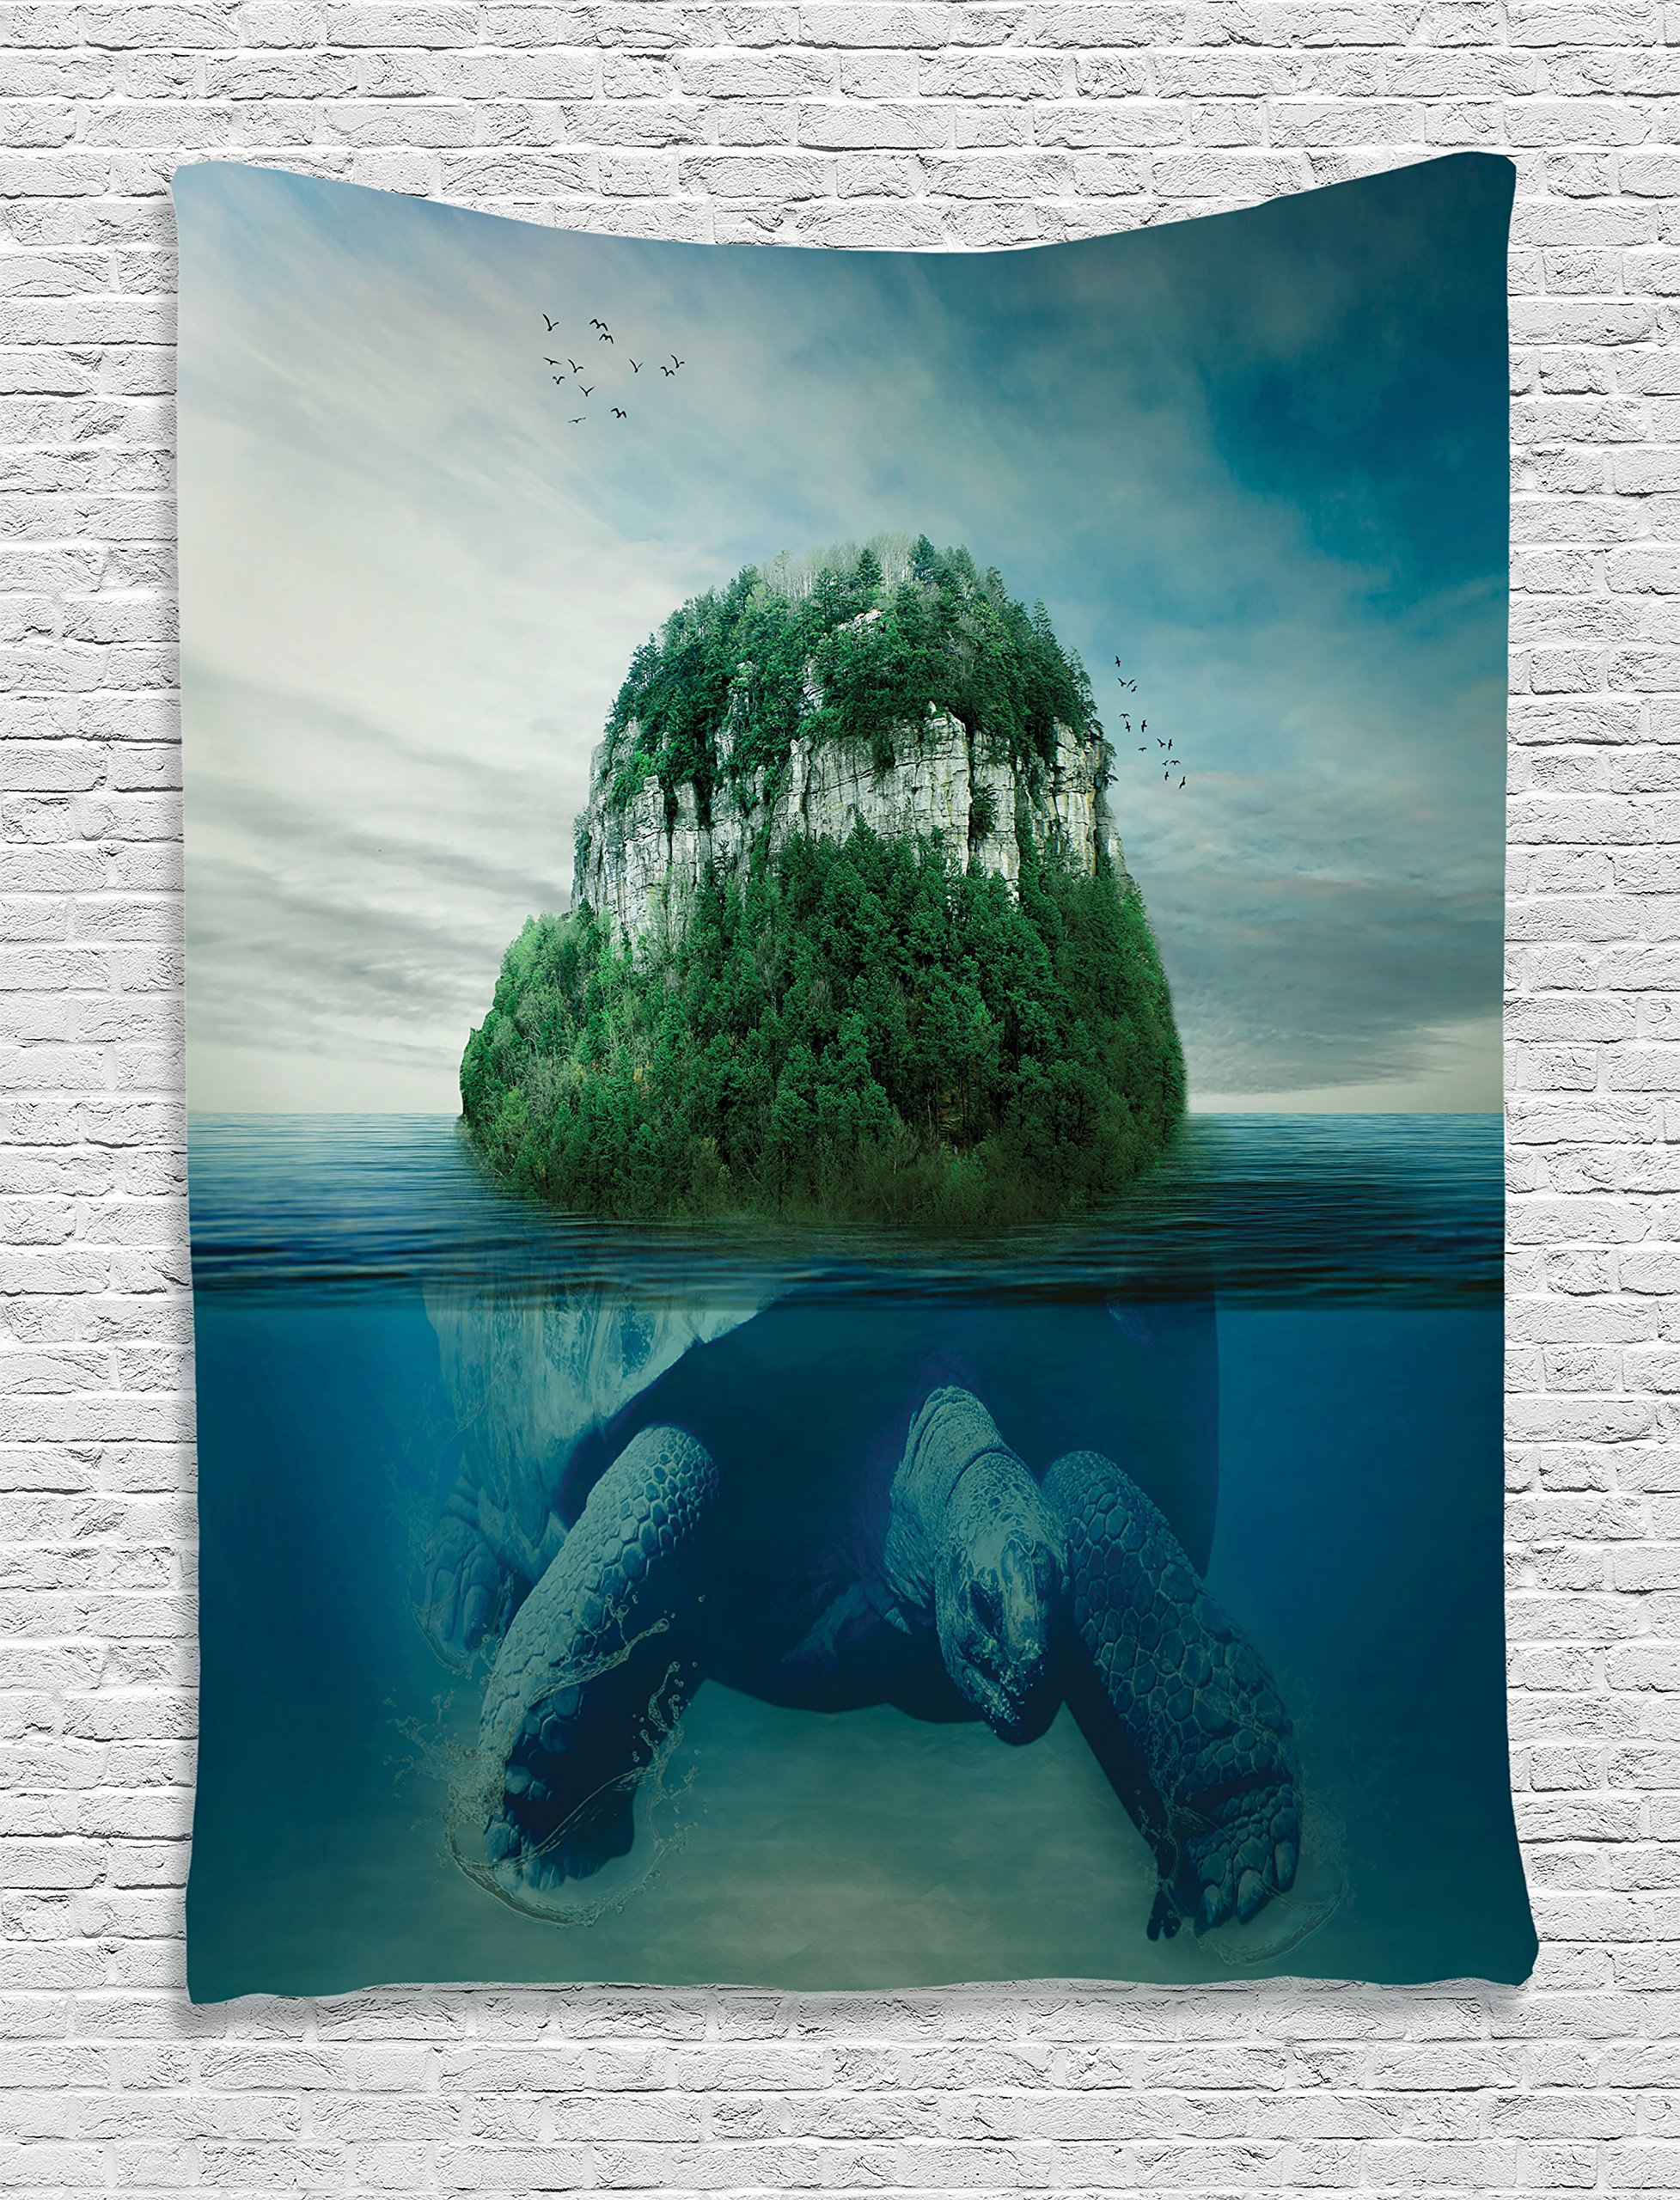 Ambesonne Sea Animals Decor Collection, Giant Turtle Carrying Island on Back Swimming under the Ocean Fantasy Photo Pattern, Bedroom Living Room Dorm Wall Hanging Tapestry, Green Gray